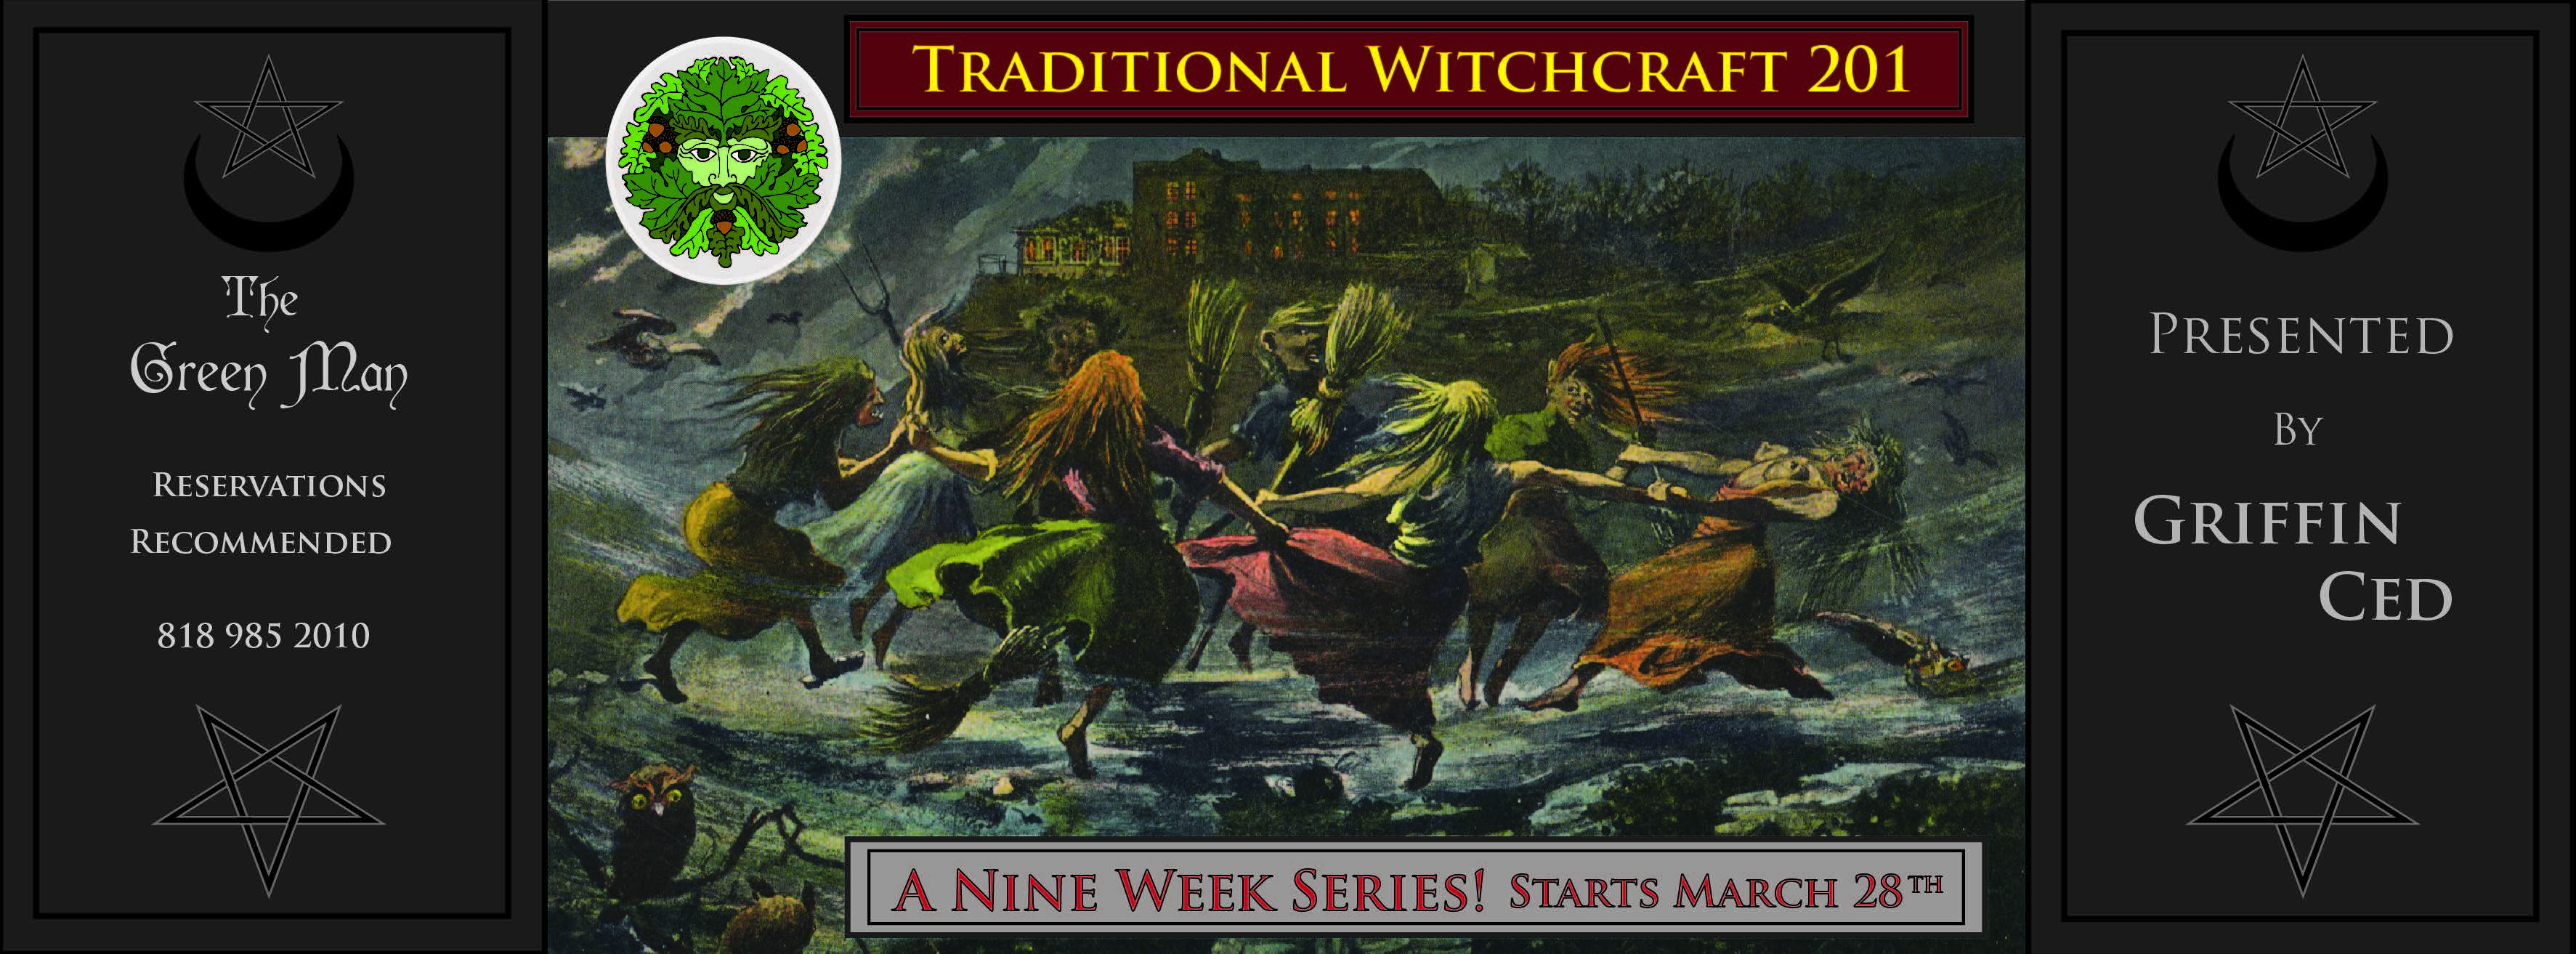 traditional witchcraft series 201 flyer